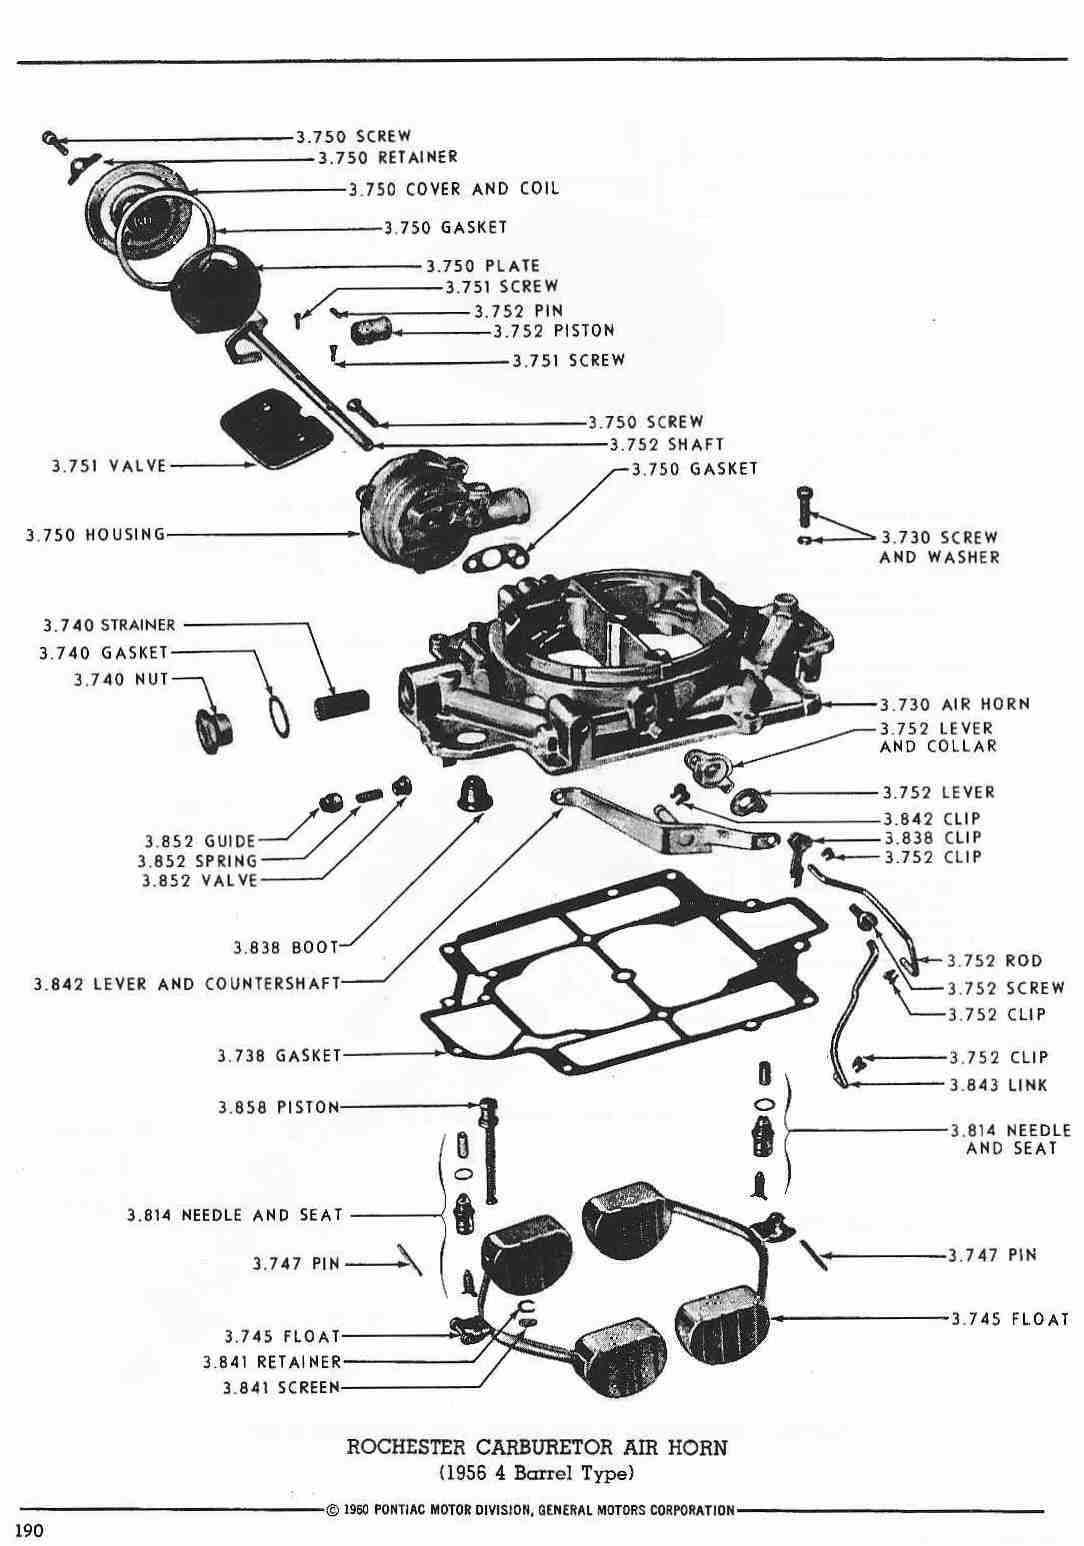 1999 Pontiac Grand Prix Fuse Box Diagram also 5467v Pontiac Bonneville Sse Speed Sensor Input Located further Gm Bumper Cover 12377115 together with 2002 Pontiac Bonneville Ssei Fuse Box as well Sdmairbagtechinfo. on 2001 pontiac bonneville sle